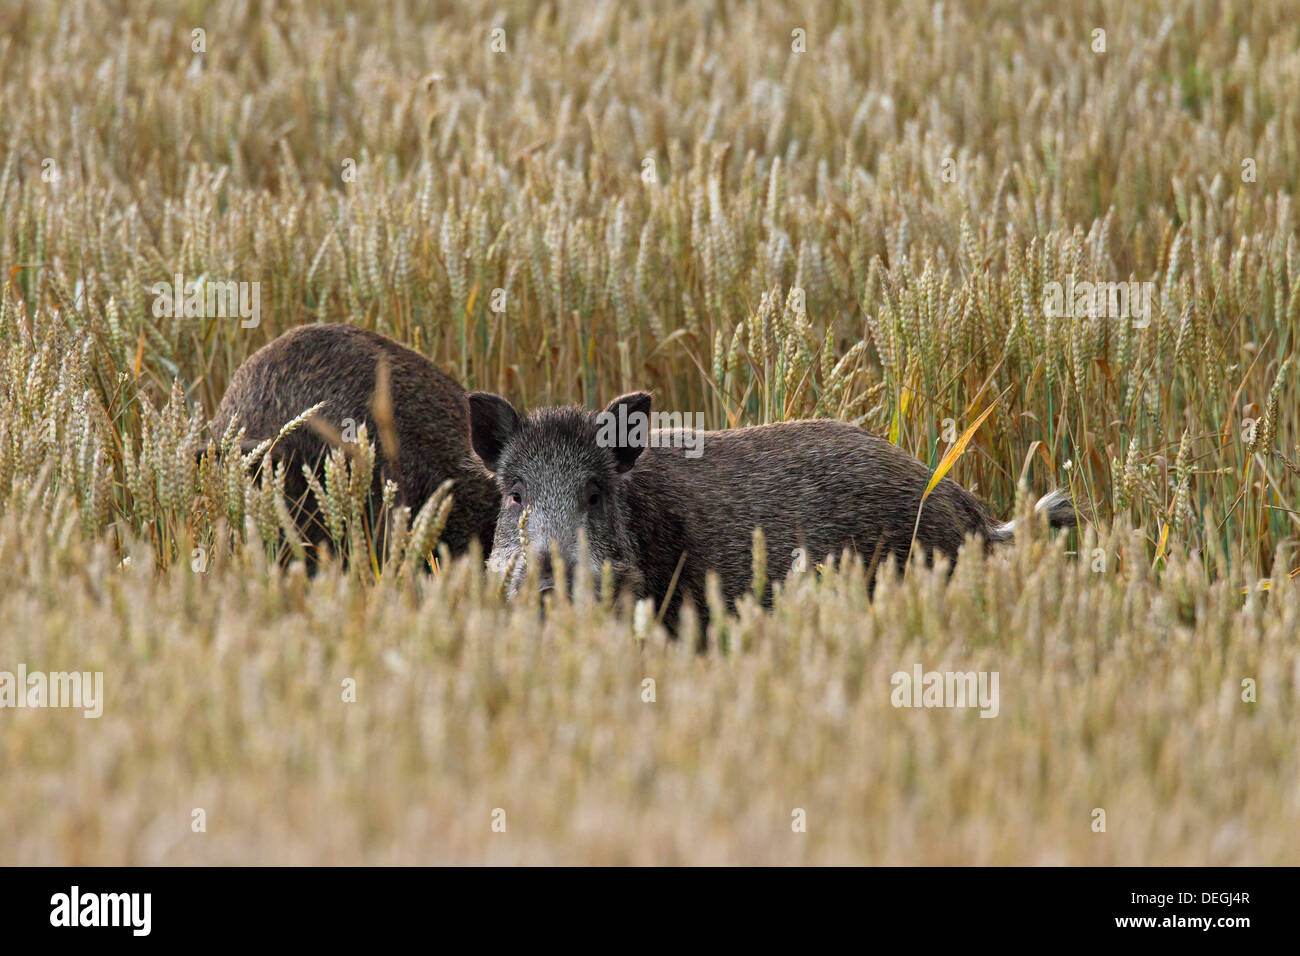 Nuisance by wild boars (Sus scrofa) trampling crop by foraging in cornfield on farmland - Stock Image